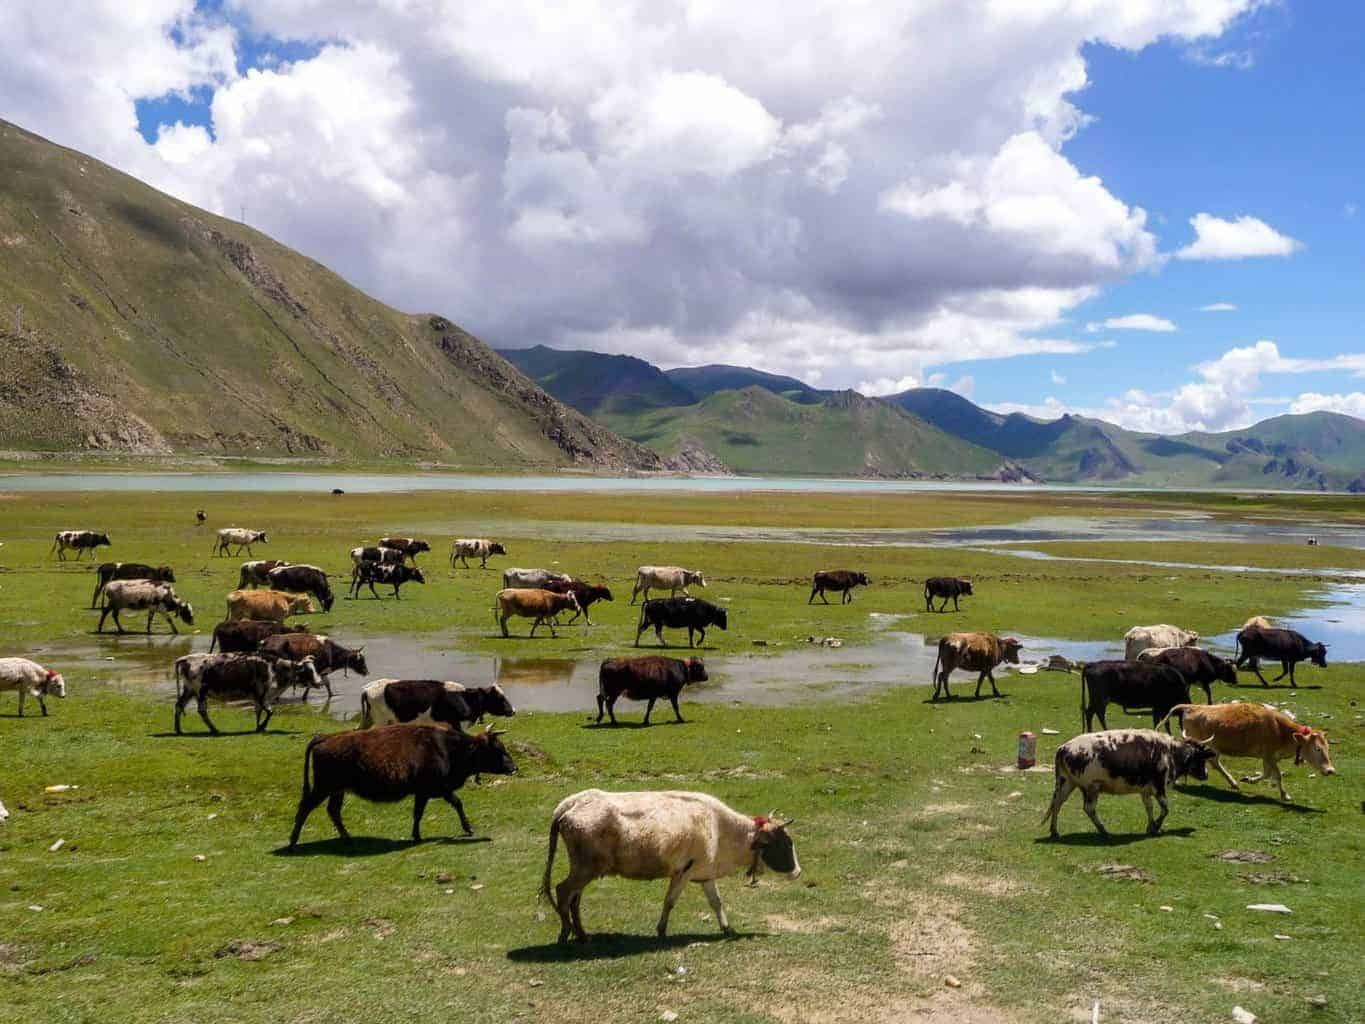 Tibet the Beauty (nature and landscape pictures)